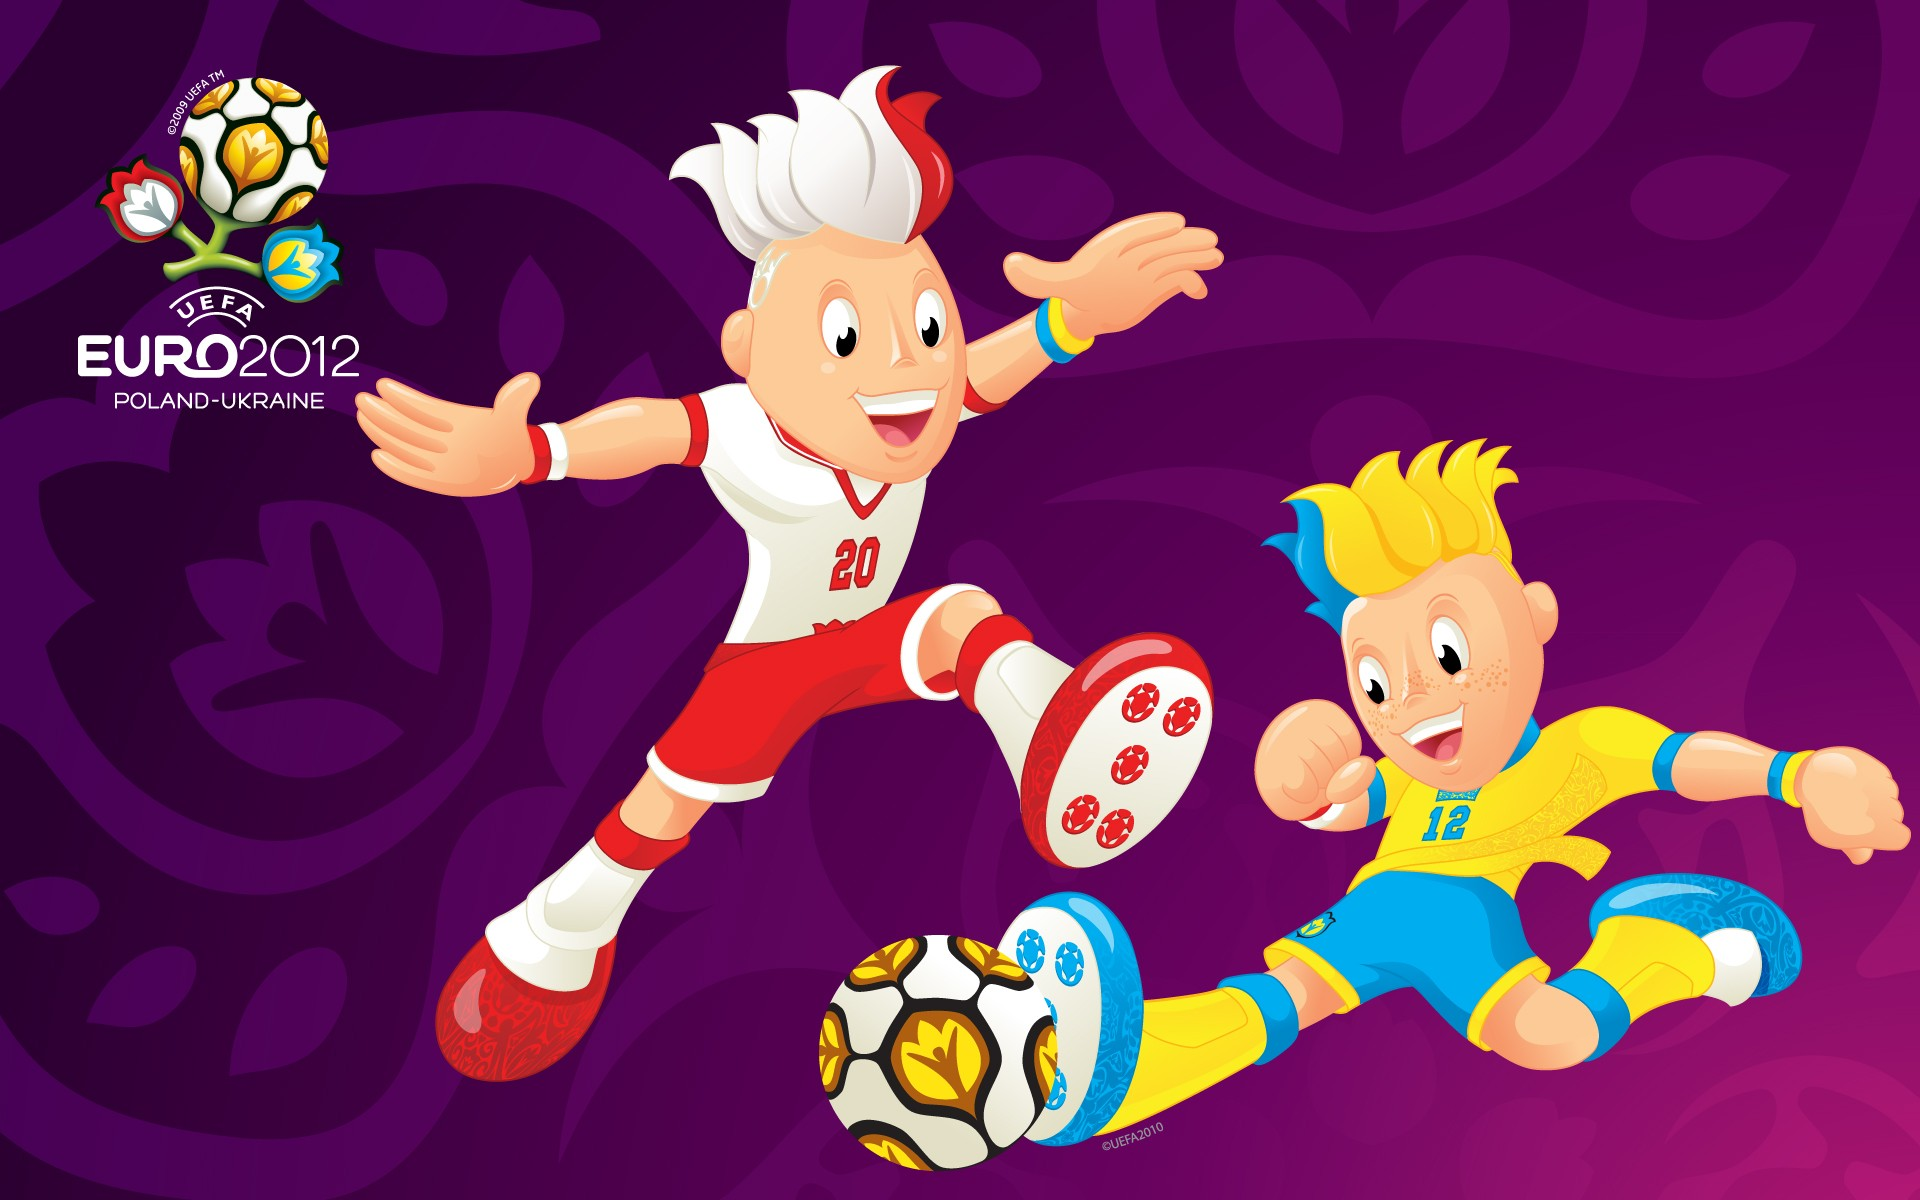 Iphone X Stock Wallpaper Live Uefa Euro 2012 Mascots Paying Game Purple Wallpapers